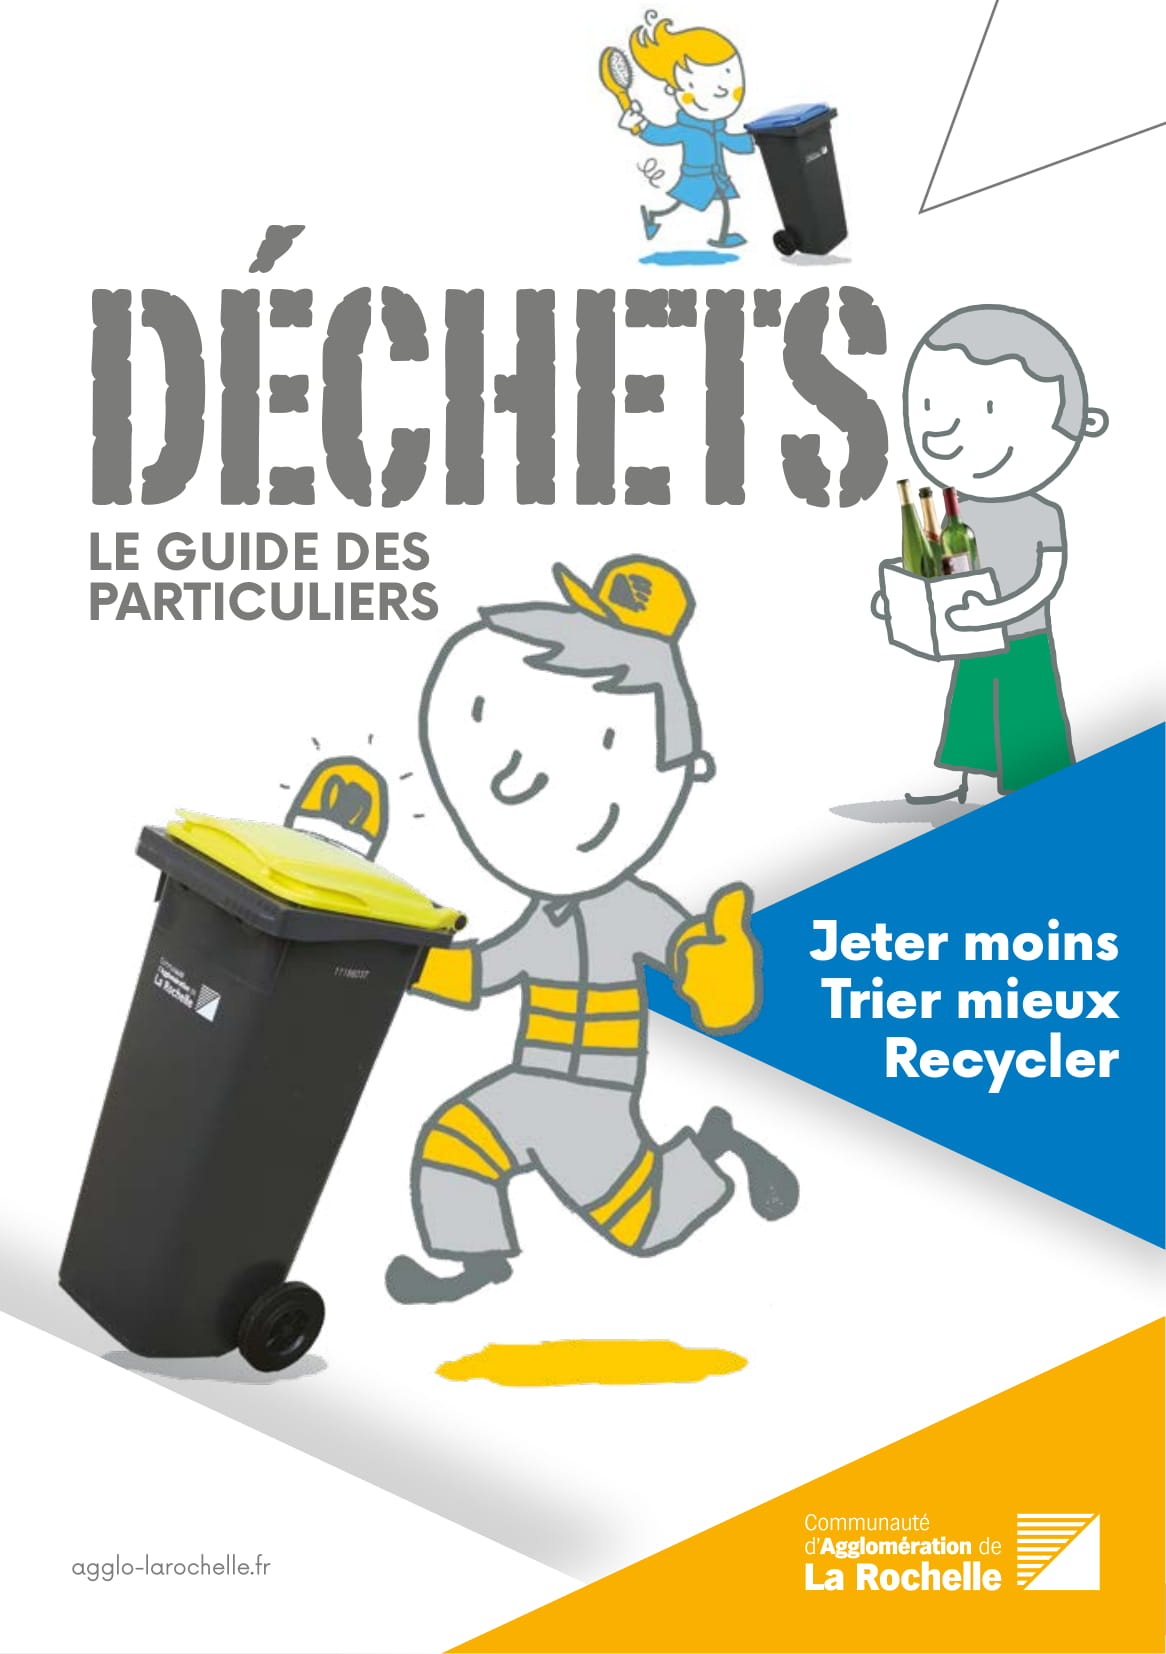 Guide_des_particuliers-01.jpg